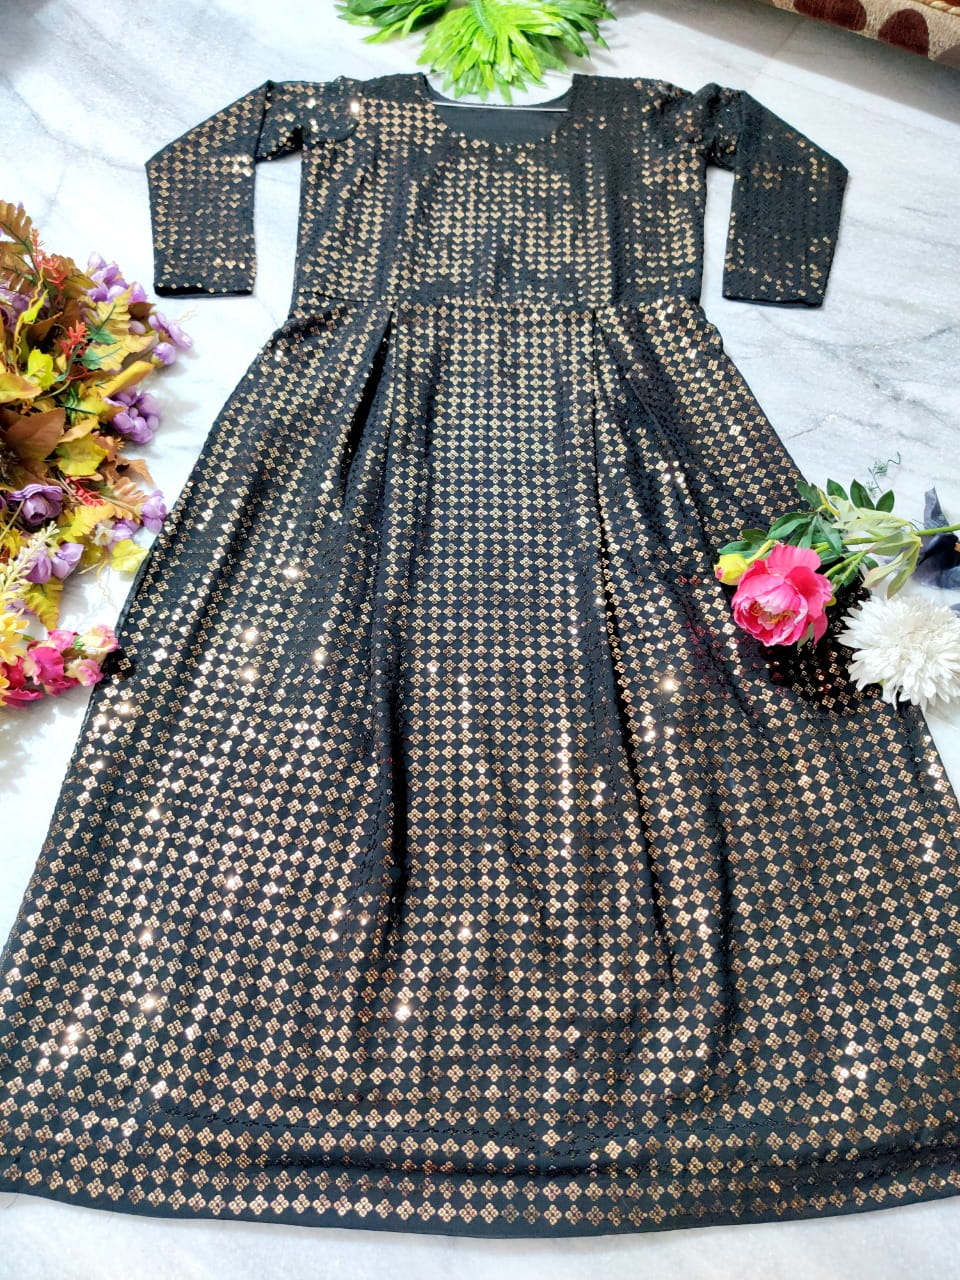 Fabulous Black Color Designer Georgette Sequence Embroidered Work Gown With Dupatta For Wedding Wear